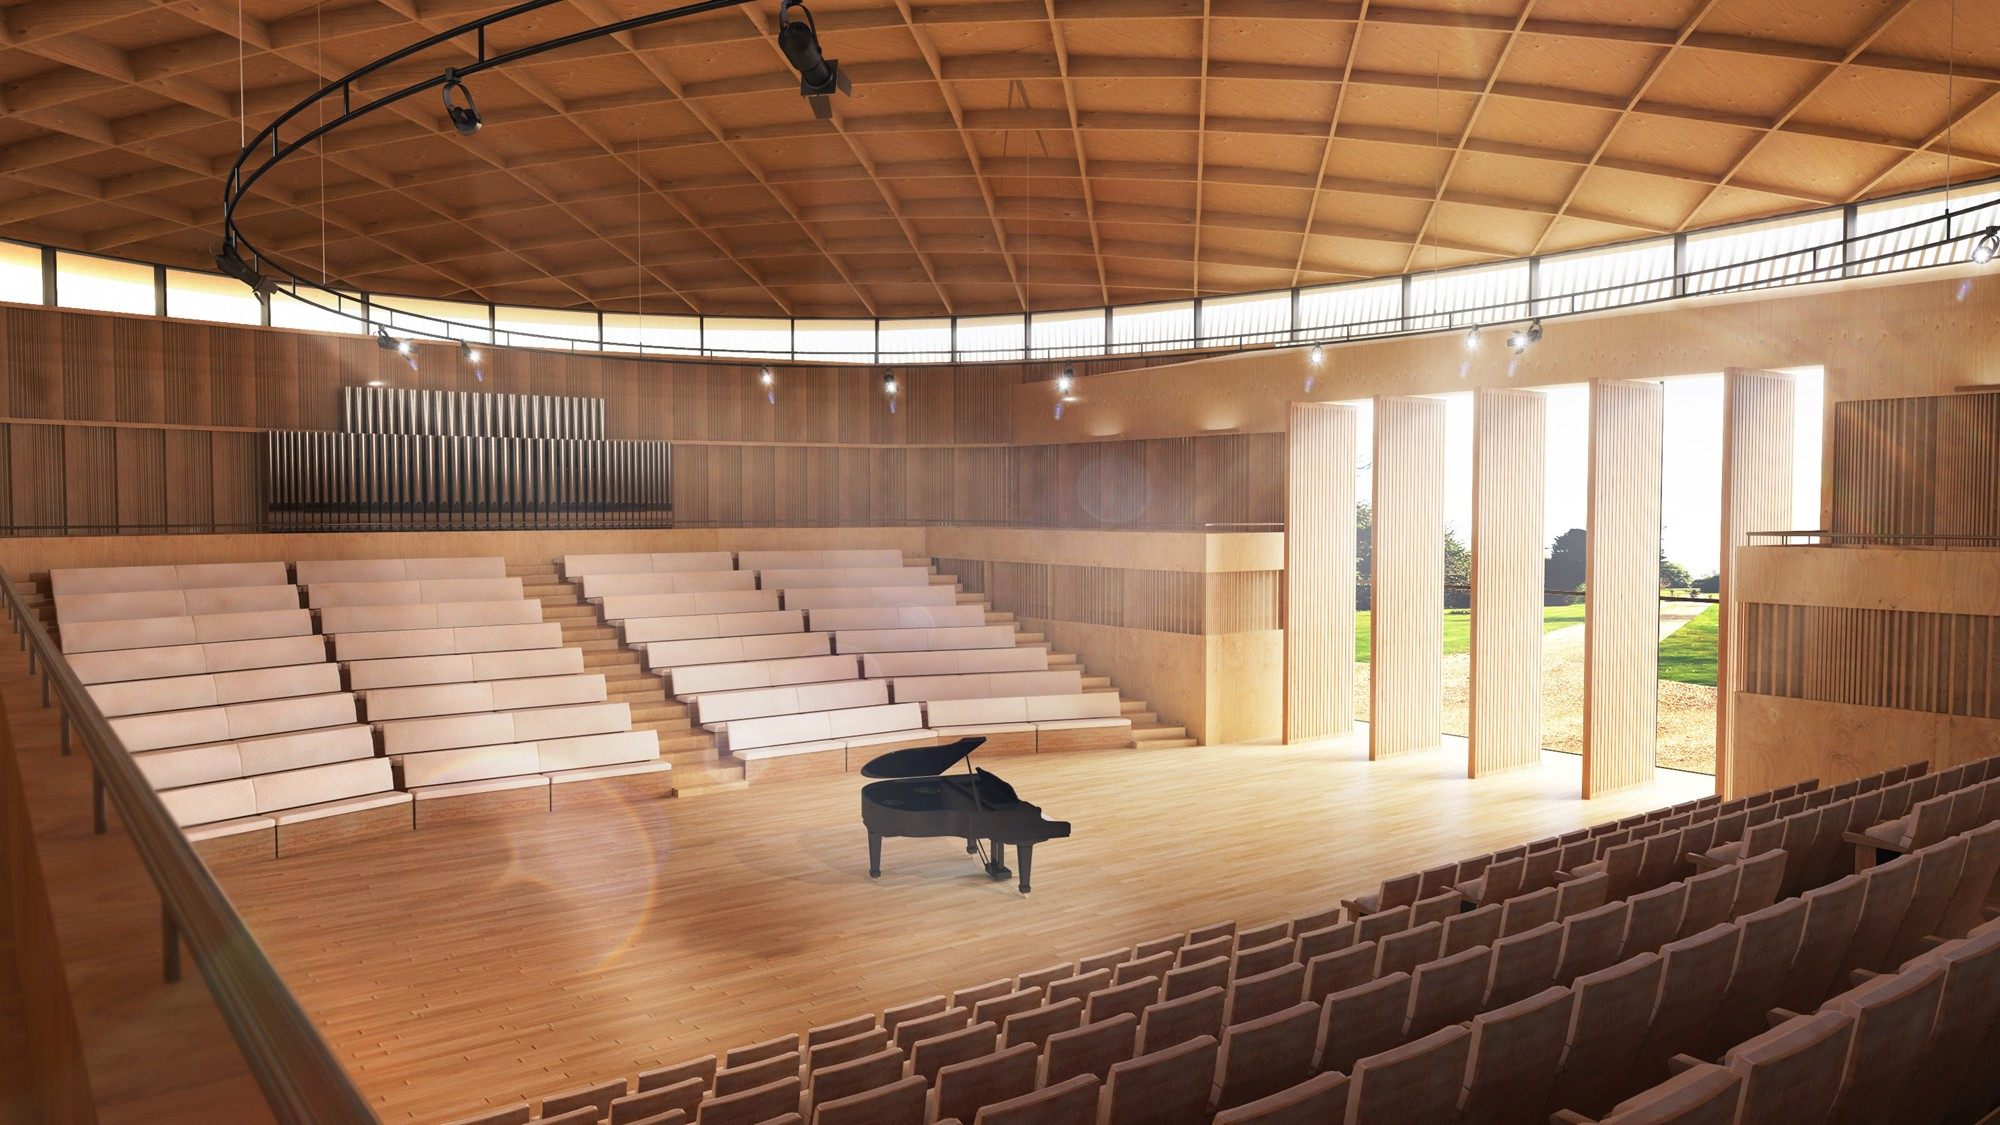 Artist's impression of the new school hall